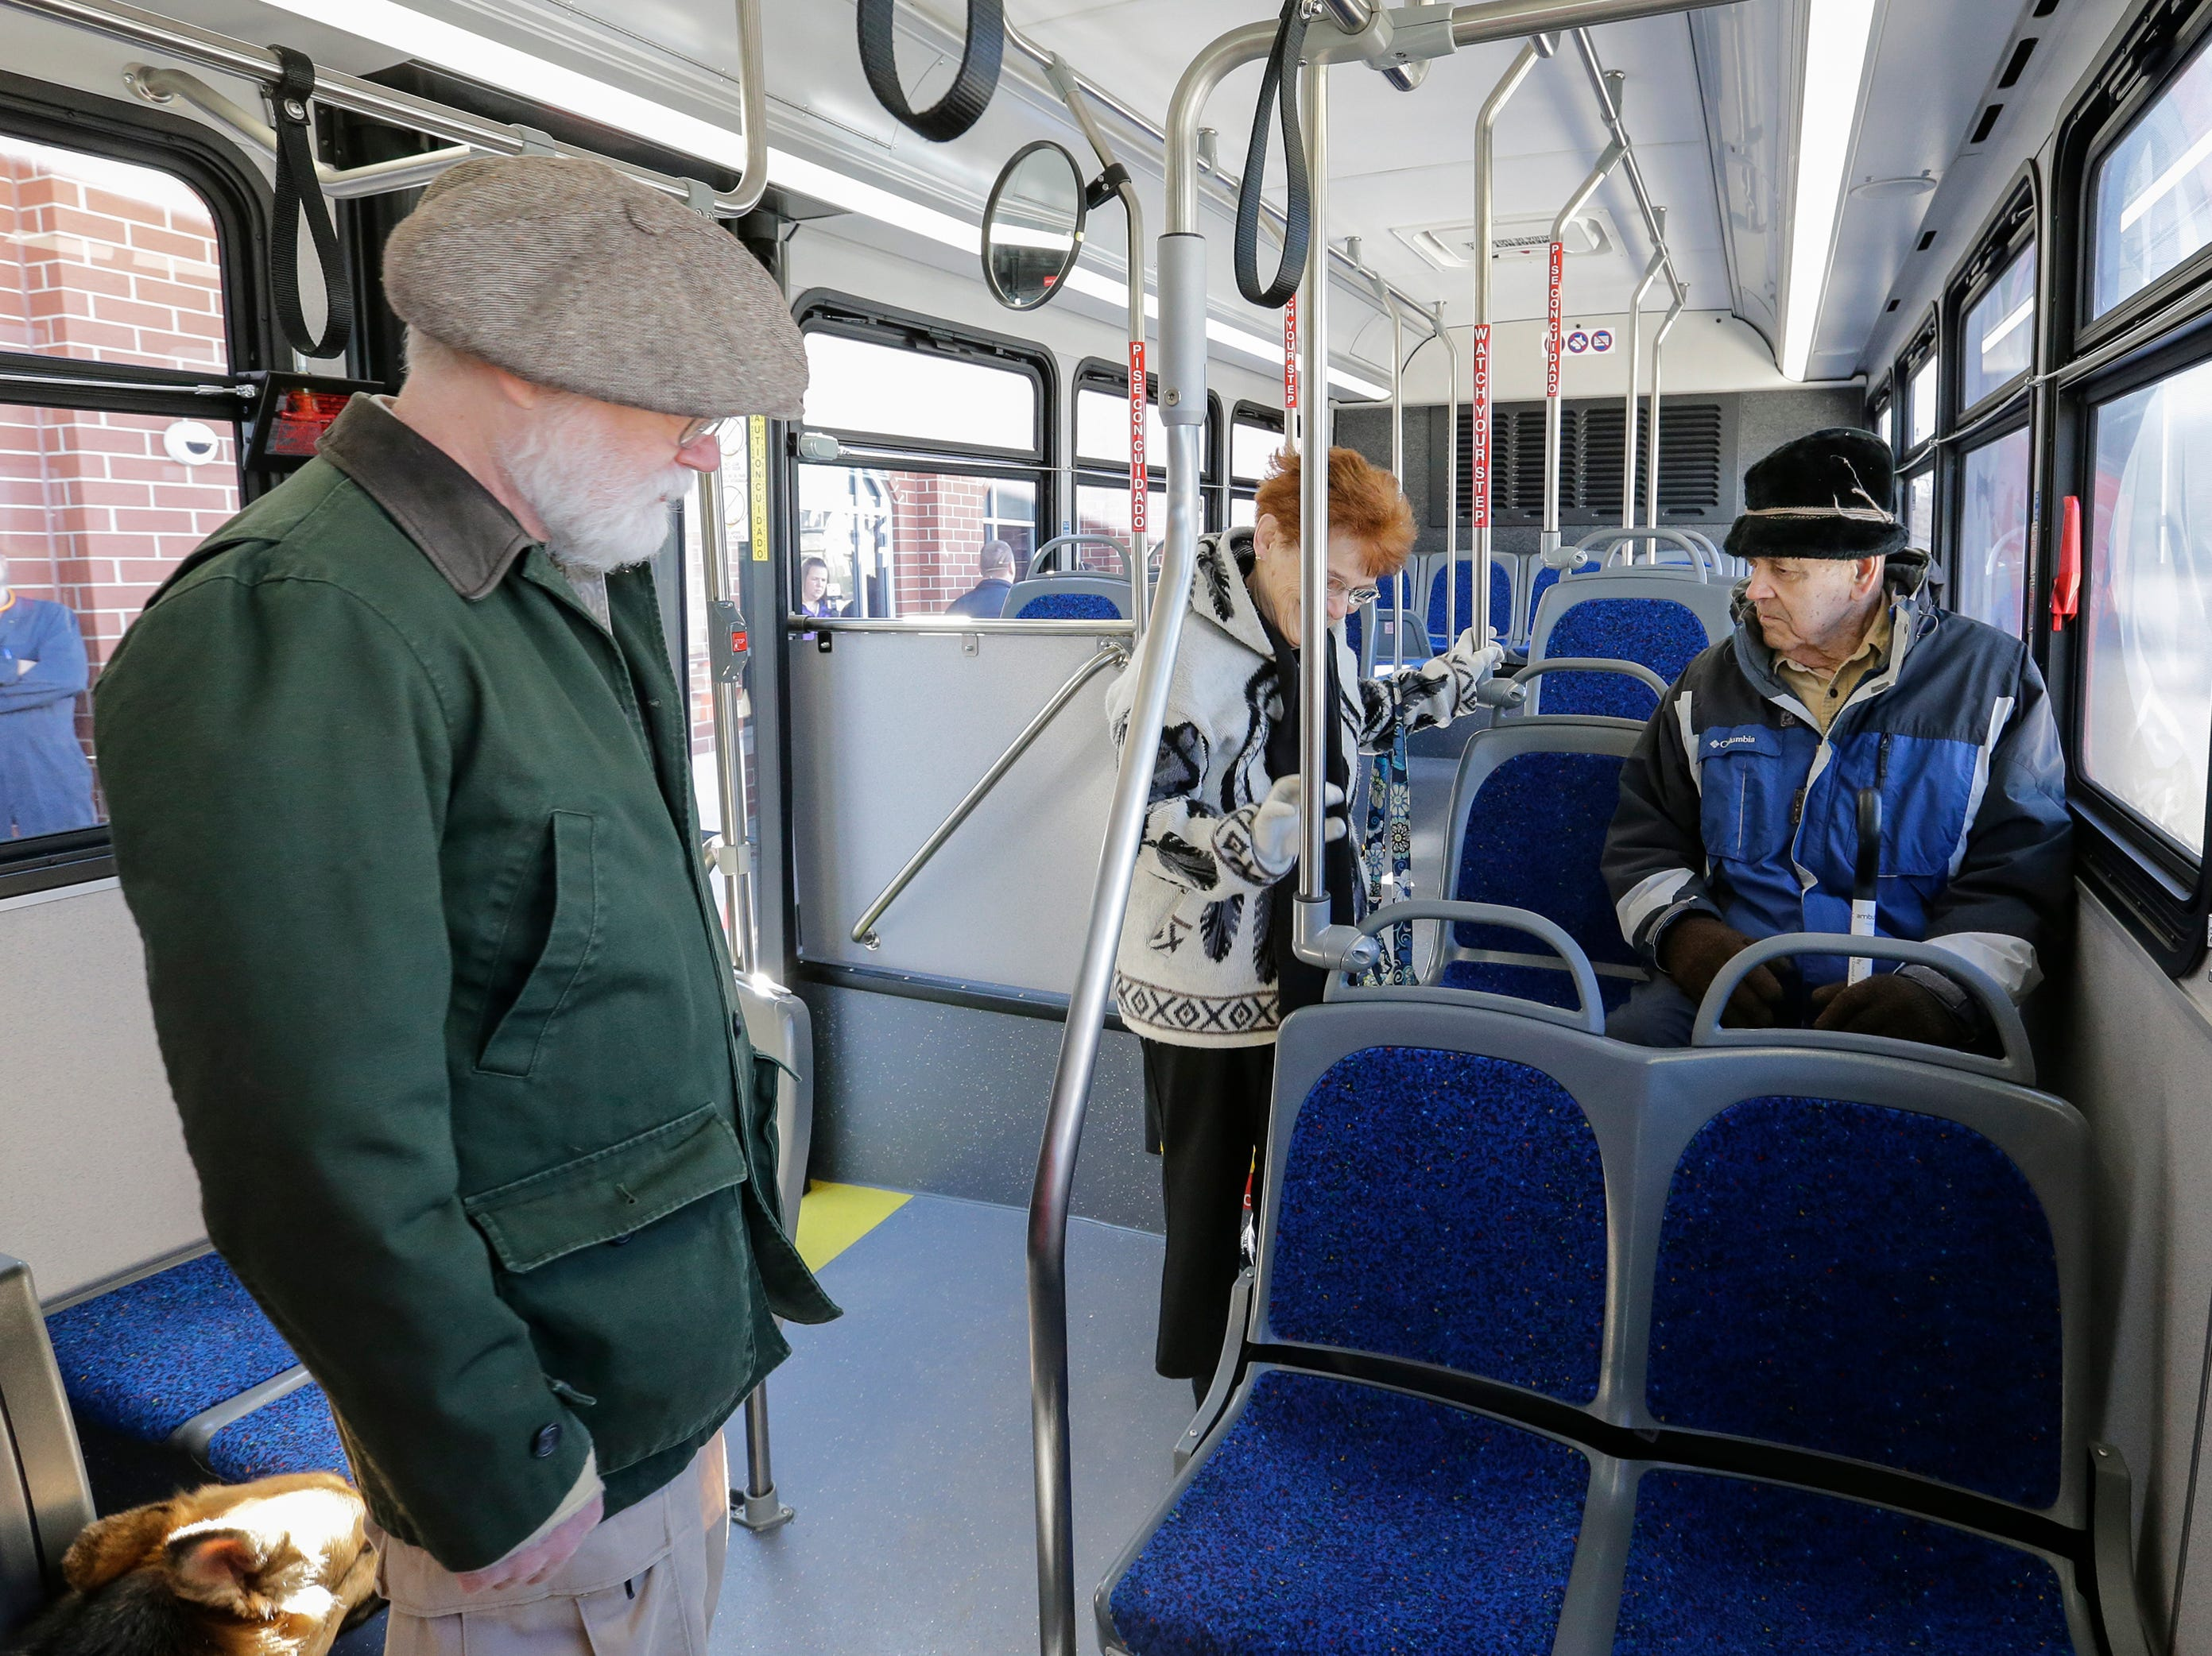 Claudia and Neil Halonen, right, of the Manitowoc Transit Commission, try out the seats on a new city bus at Maritime Metro Transit Monday, March 25, 2019, in Manitowoc, Wis. The new buses feature better fuel economy, lower emissions, an updated video surveillance system, an automatic securement system for people with disabilities and the capability to incorporate a real-time transit app for mobile devices which the city hopes to implement in the future. The buses go into service today, replacing old buses with more than 600,000 miles purchased between 2004 and 2005. Joshua Clark/USA TODAY NETWORK-Wisconsin